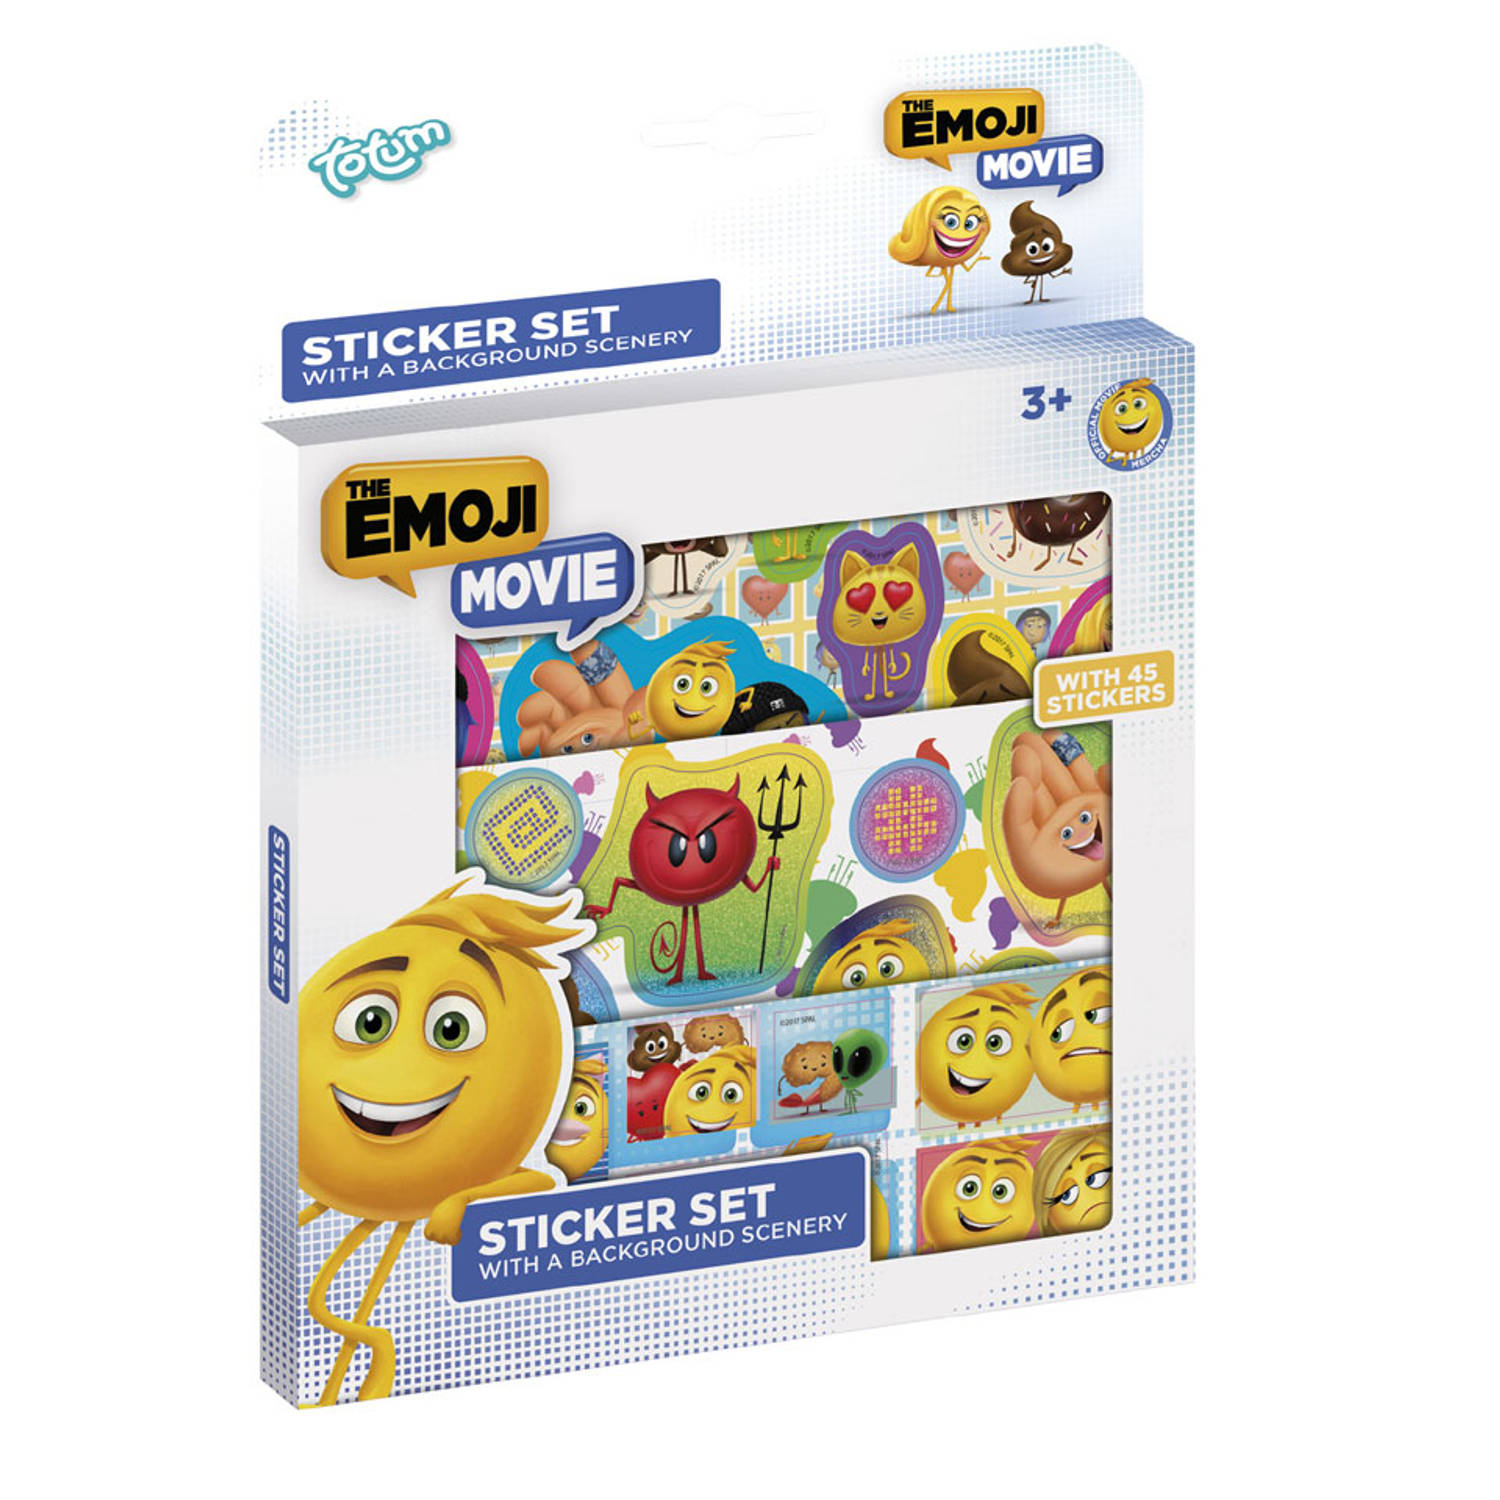 The Emoji Movie stickerset